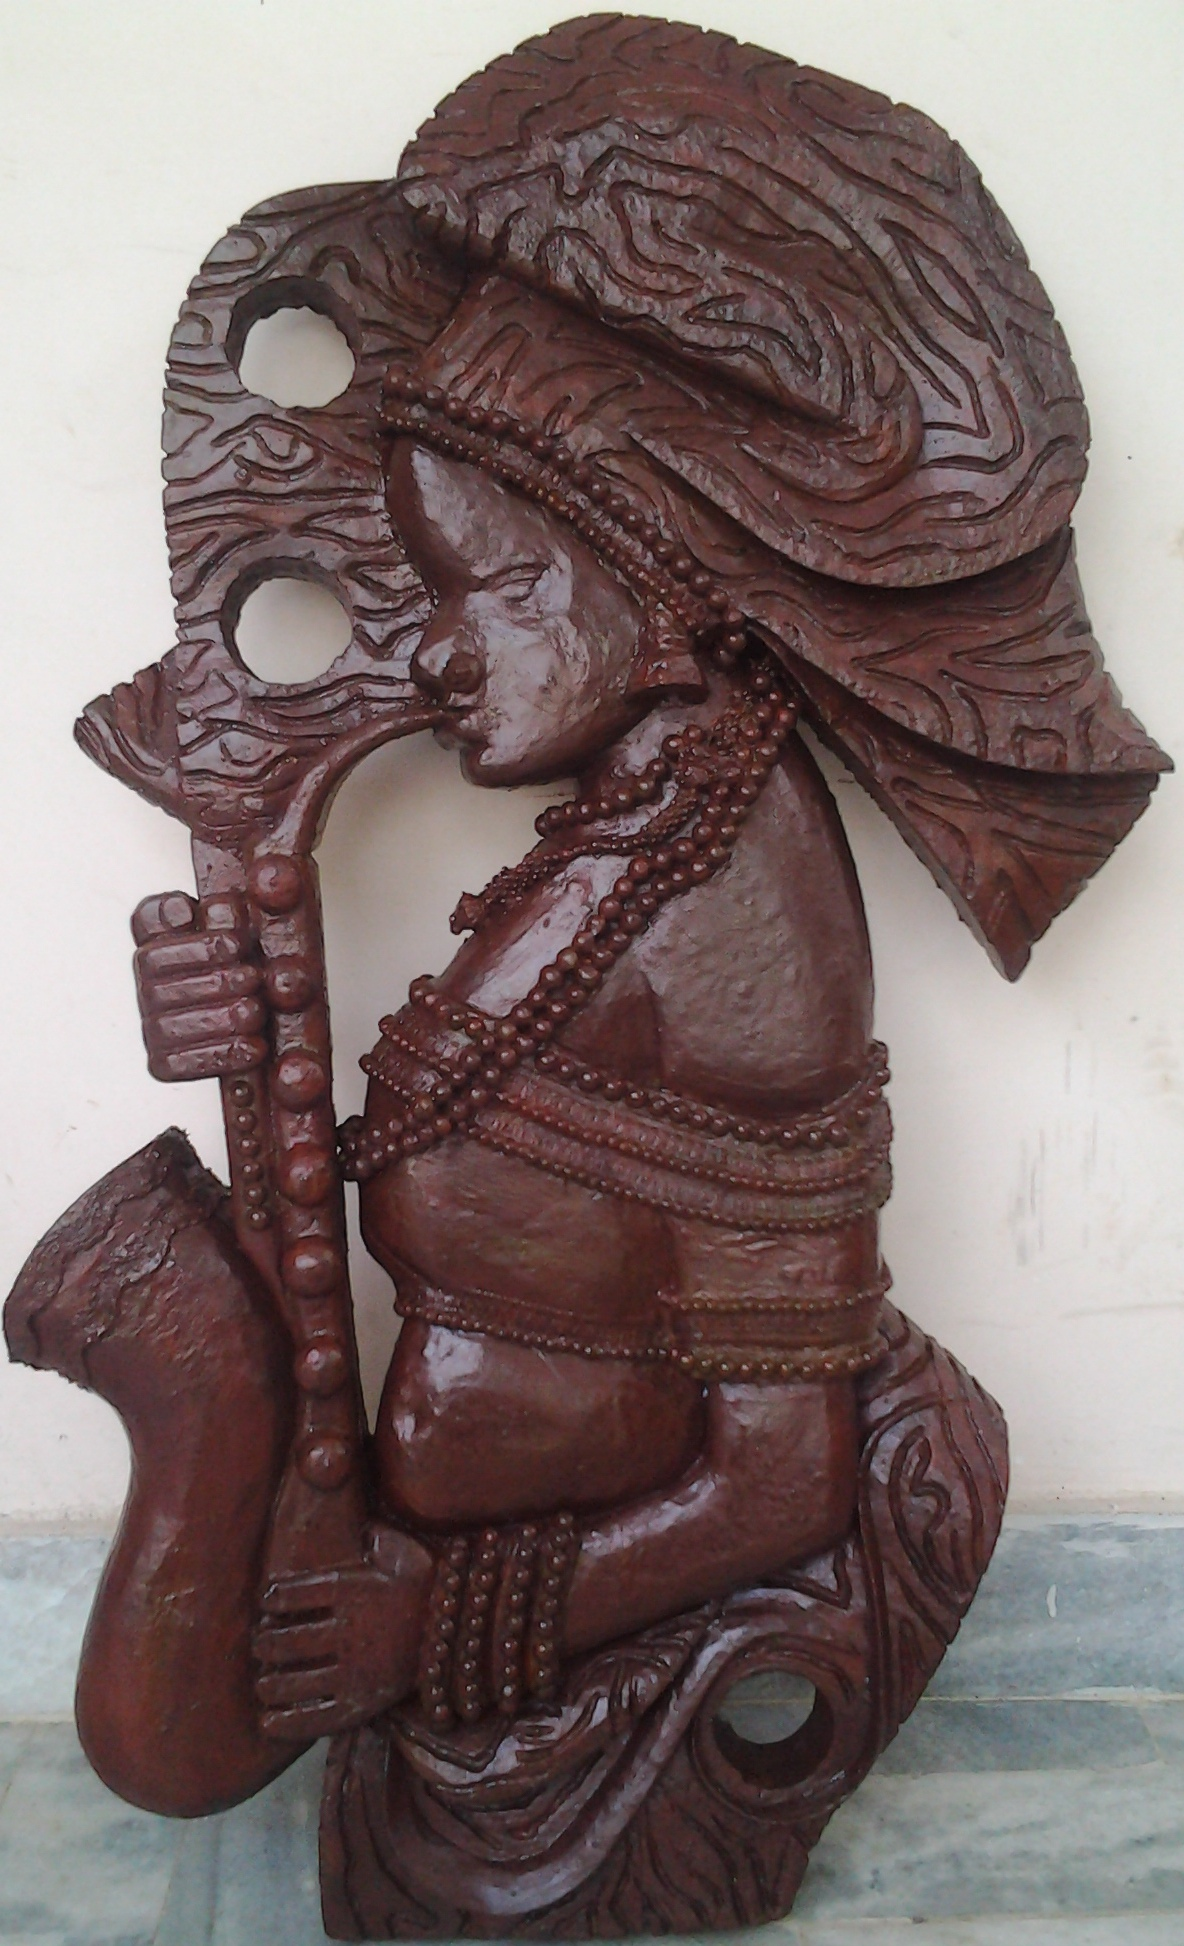 TRIBAL lADY WITH SAXOPHONE 3640